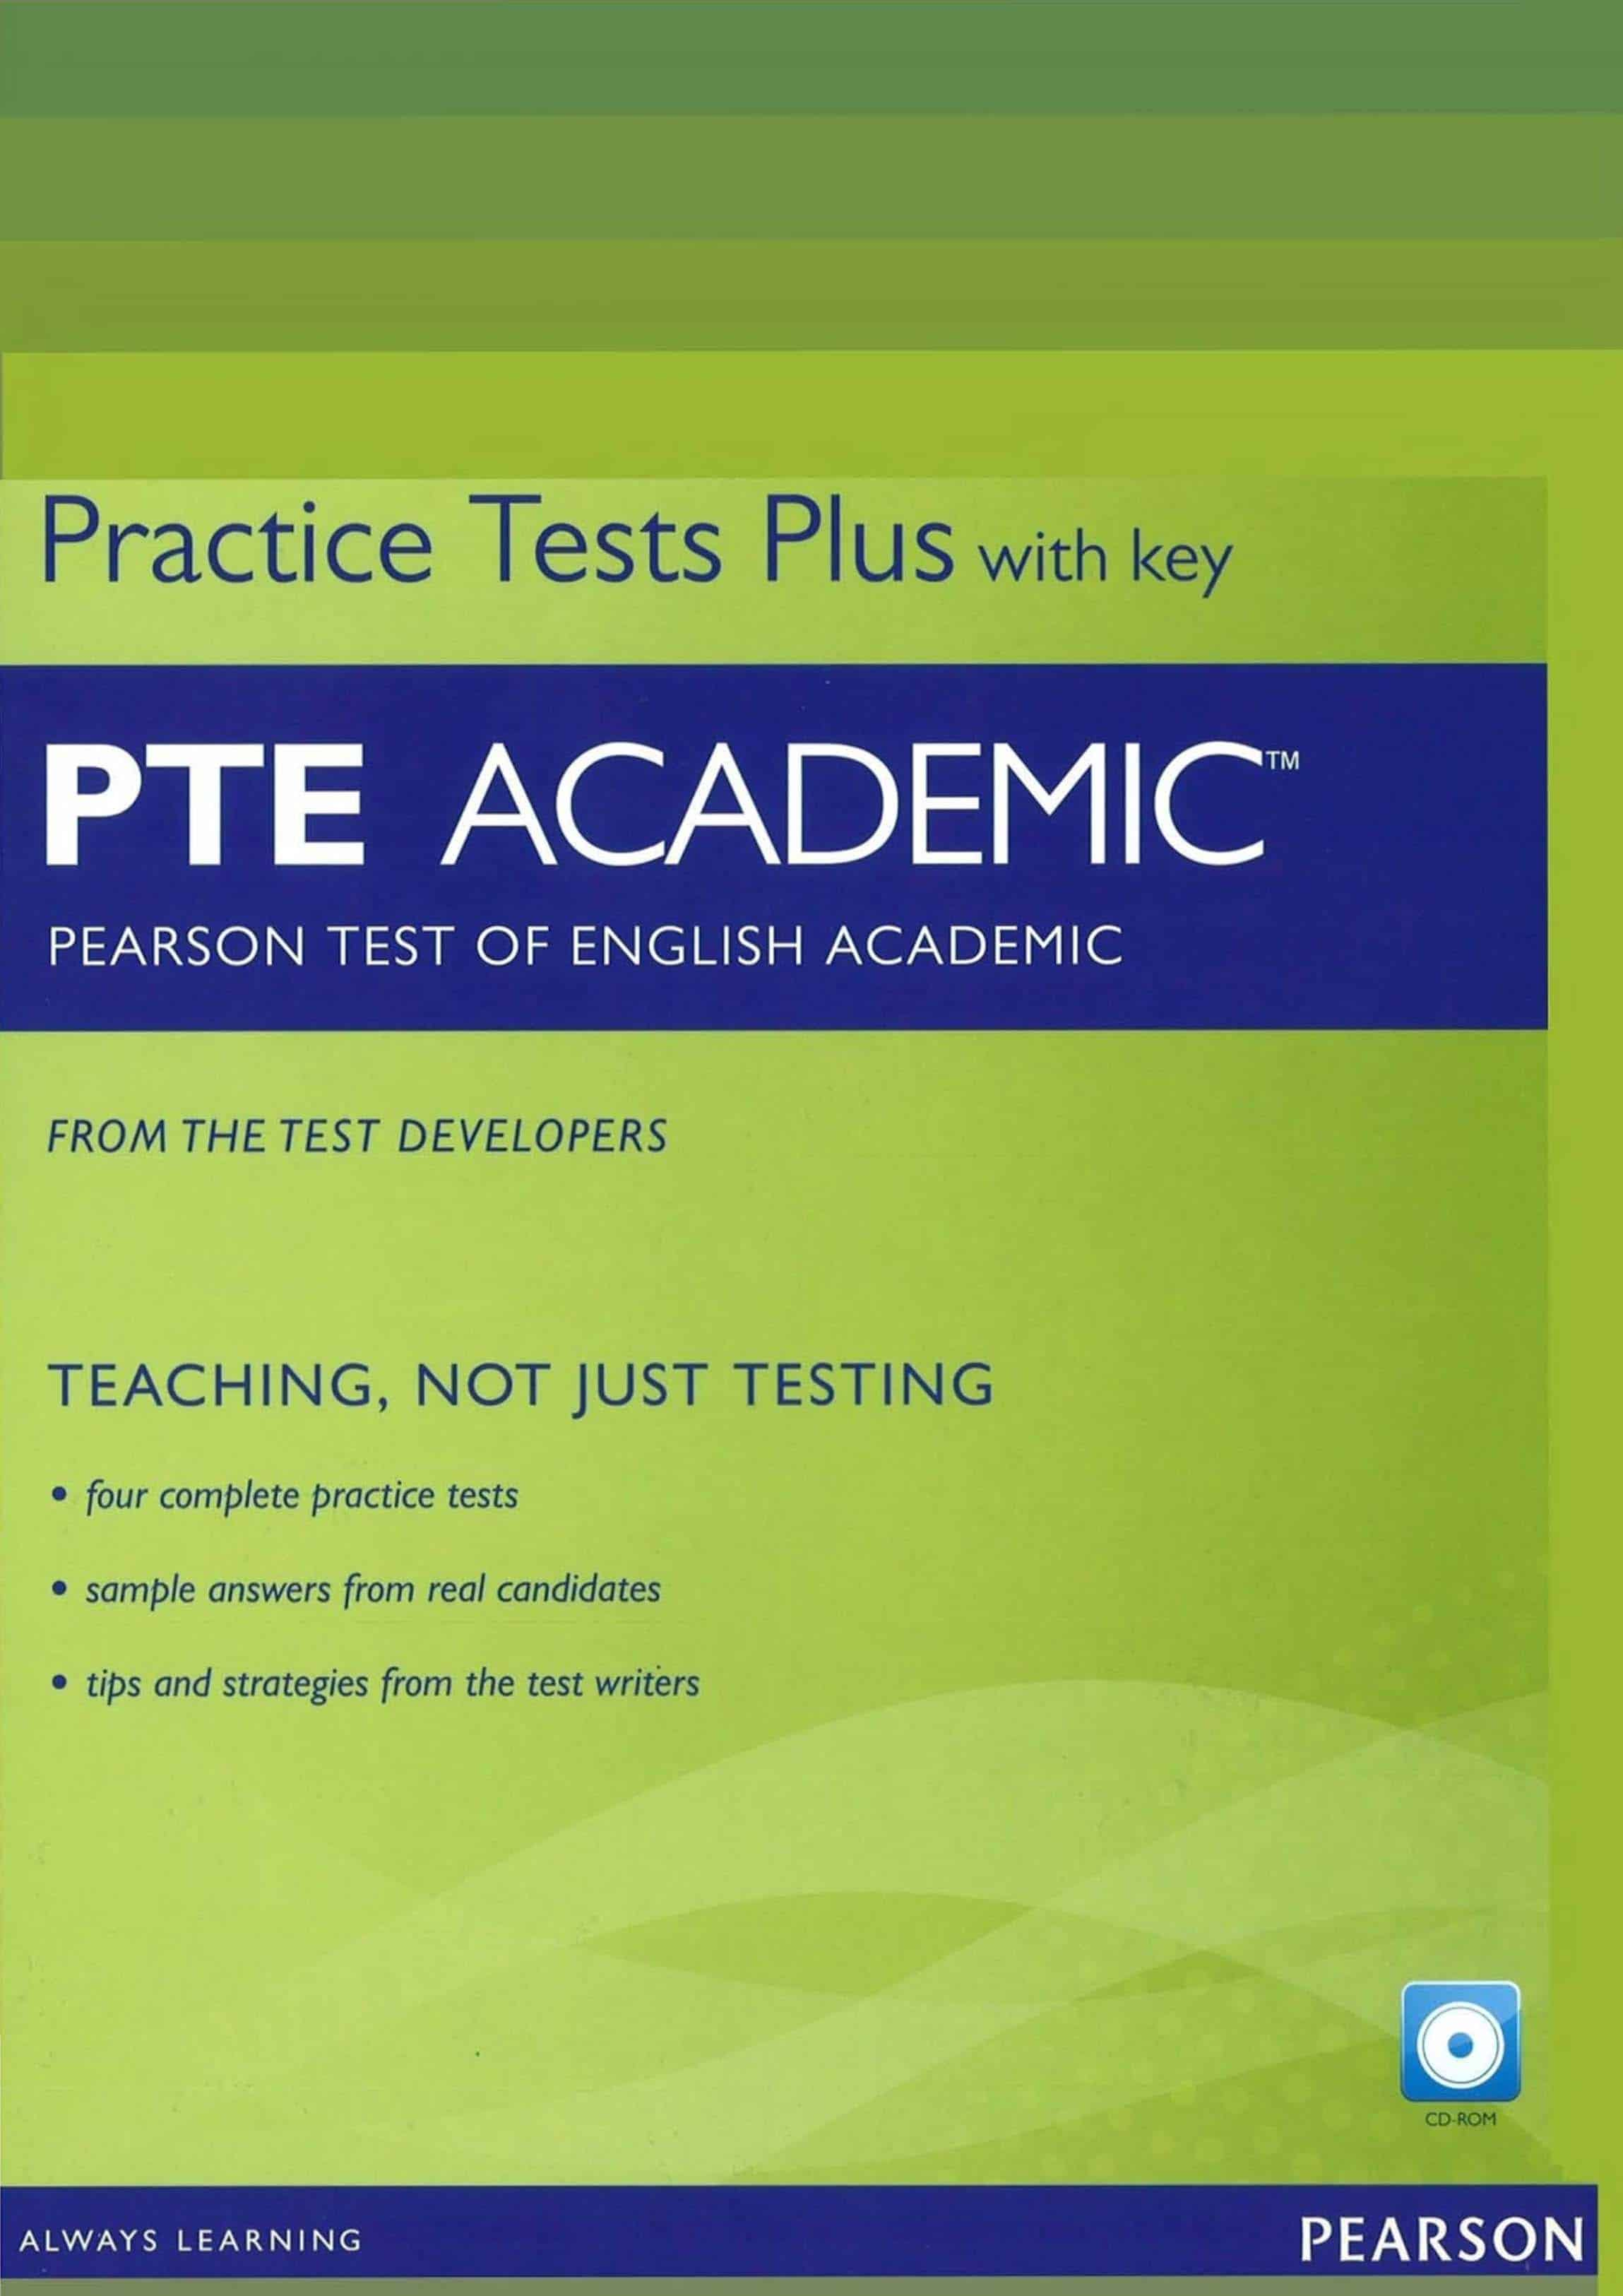 Pearson Test of English Academic Practice Tests Plus and